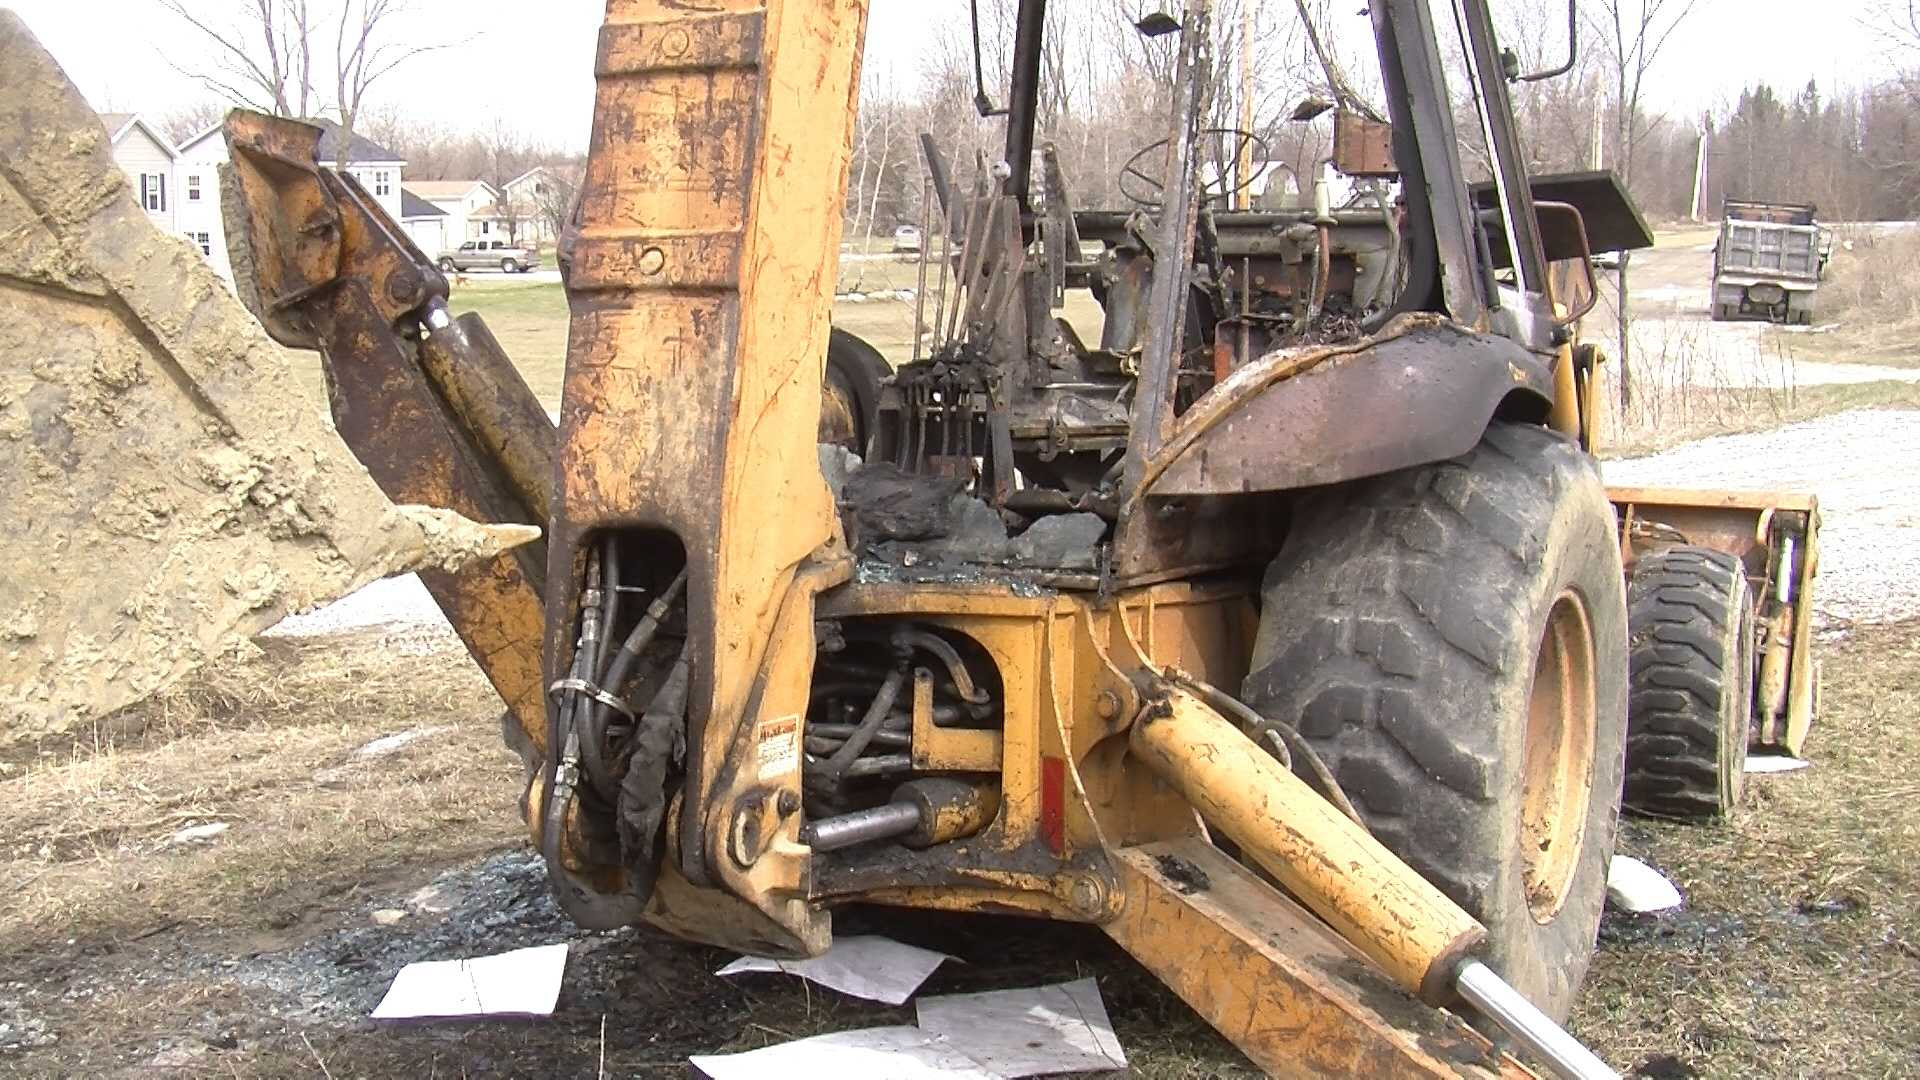 Police say three pieces of heavy construction equipment were destroyed by an arson fire on Wednesday night.